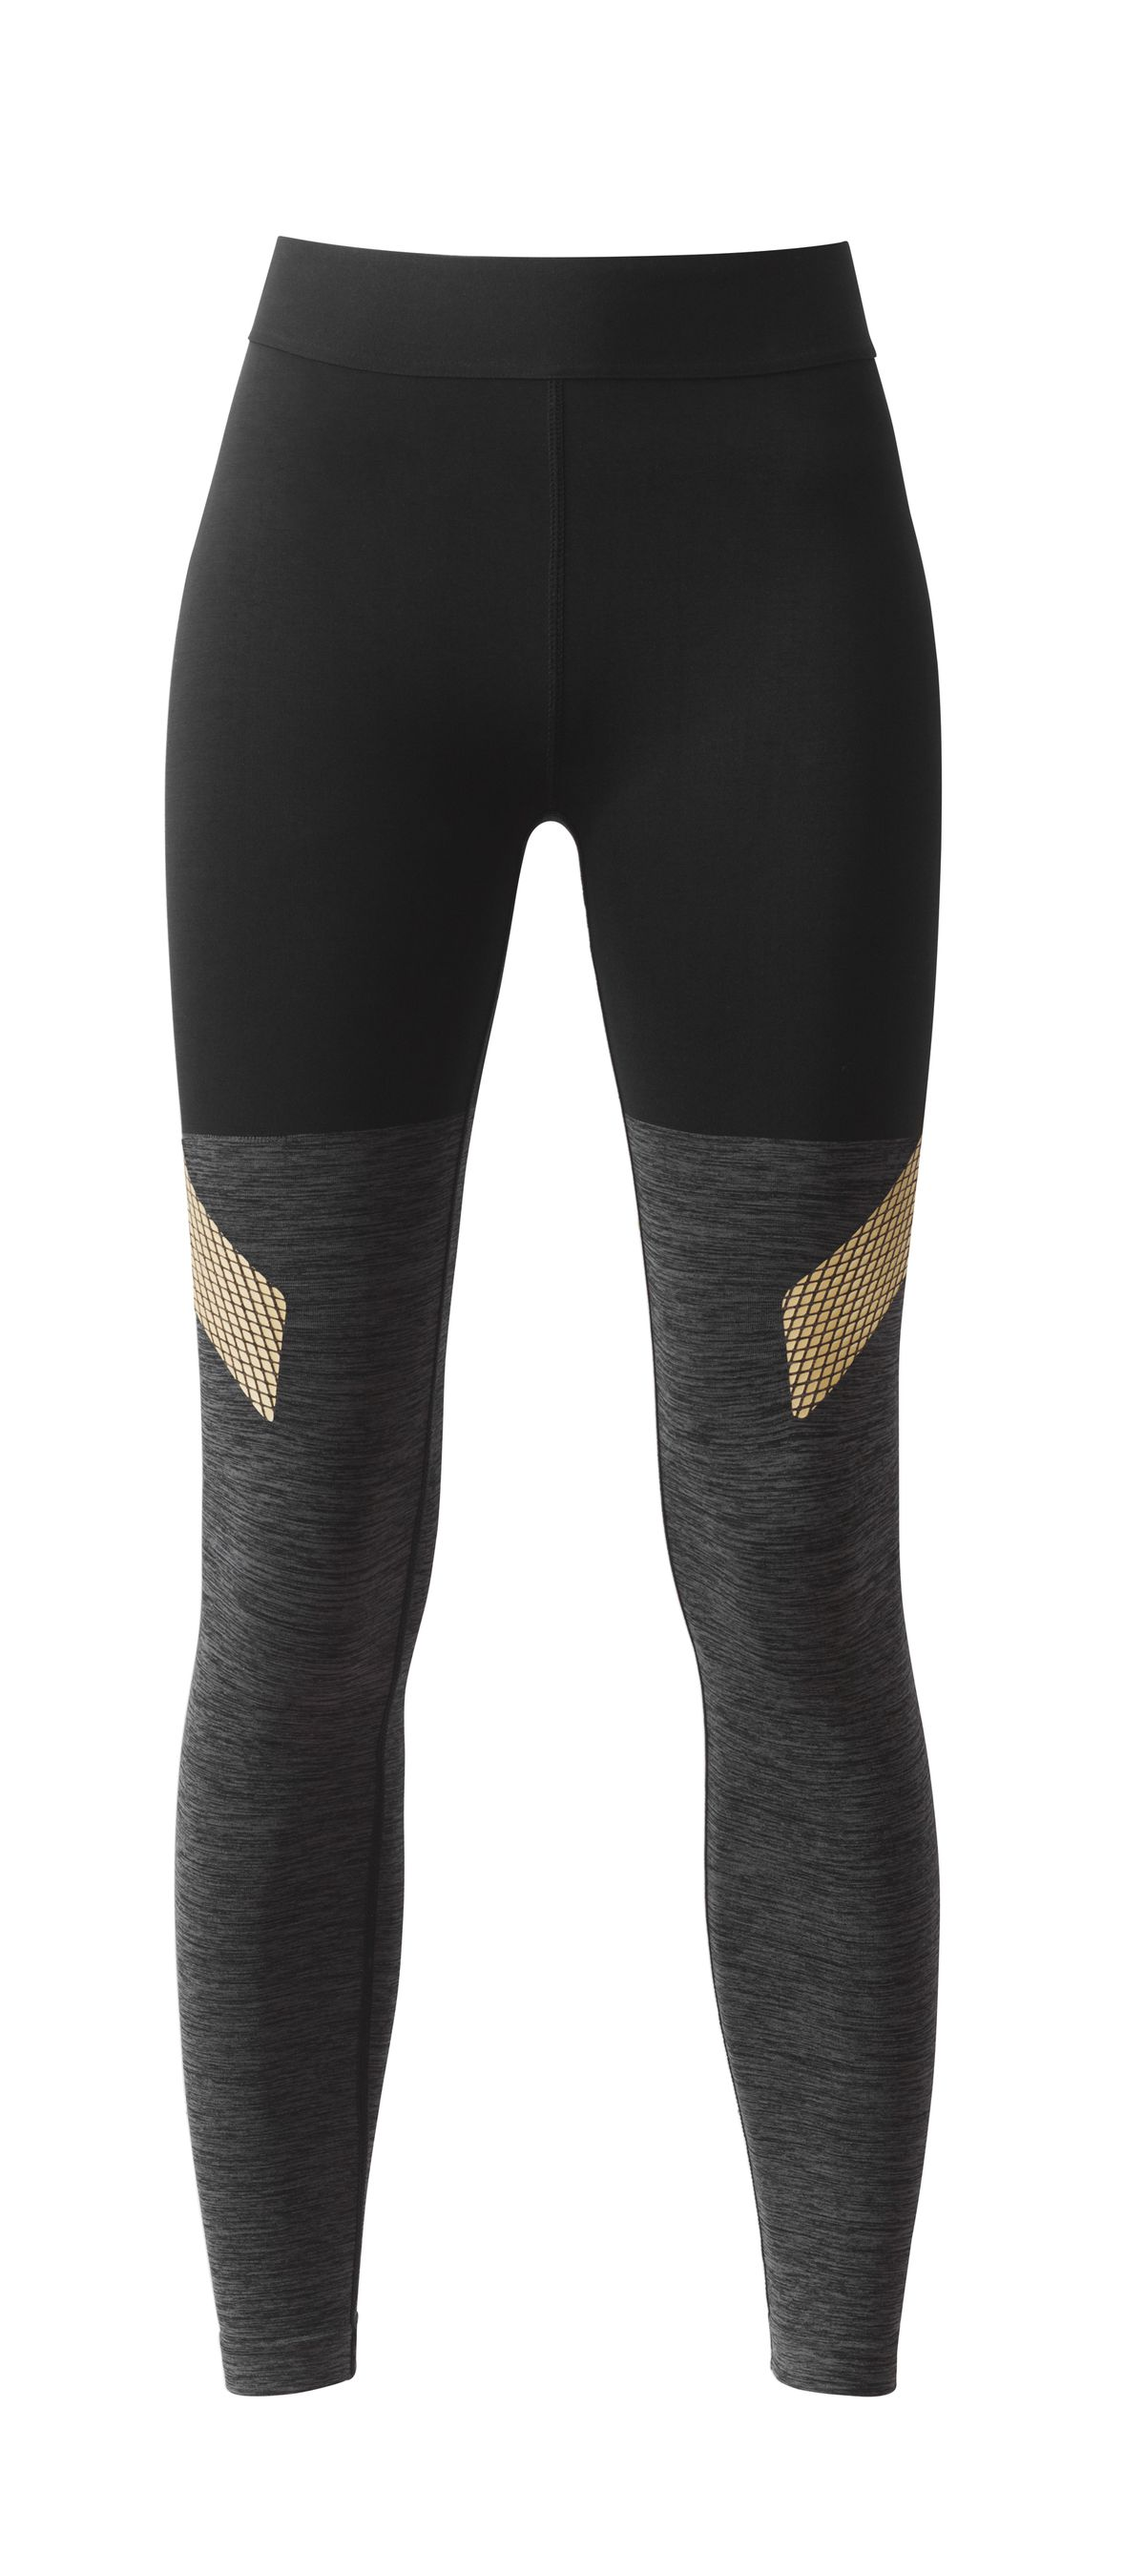 Black and grey leggings with gold detailing, $50.